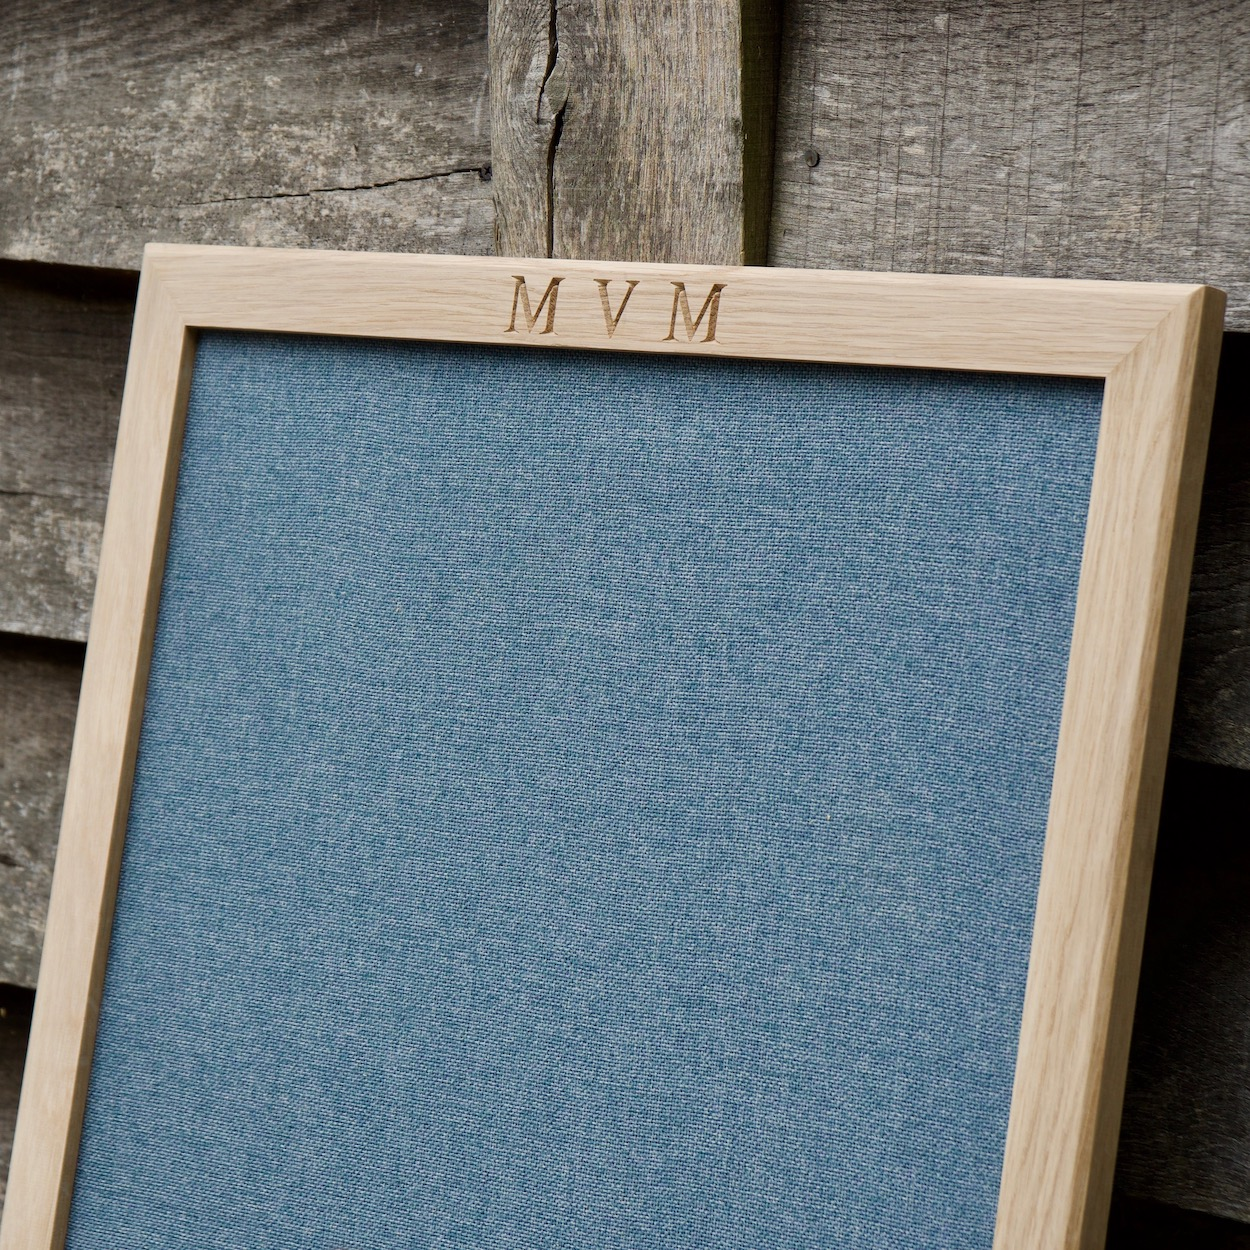 engraved-fabric-pin-board